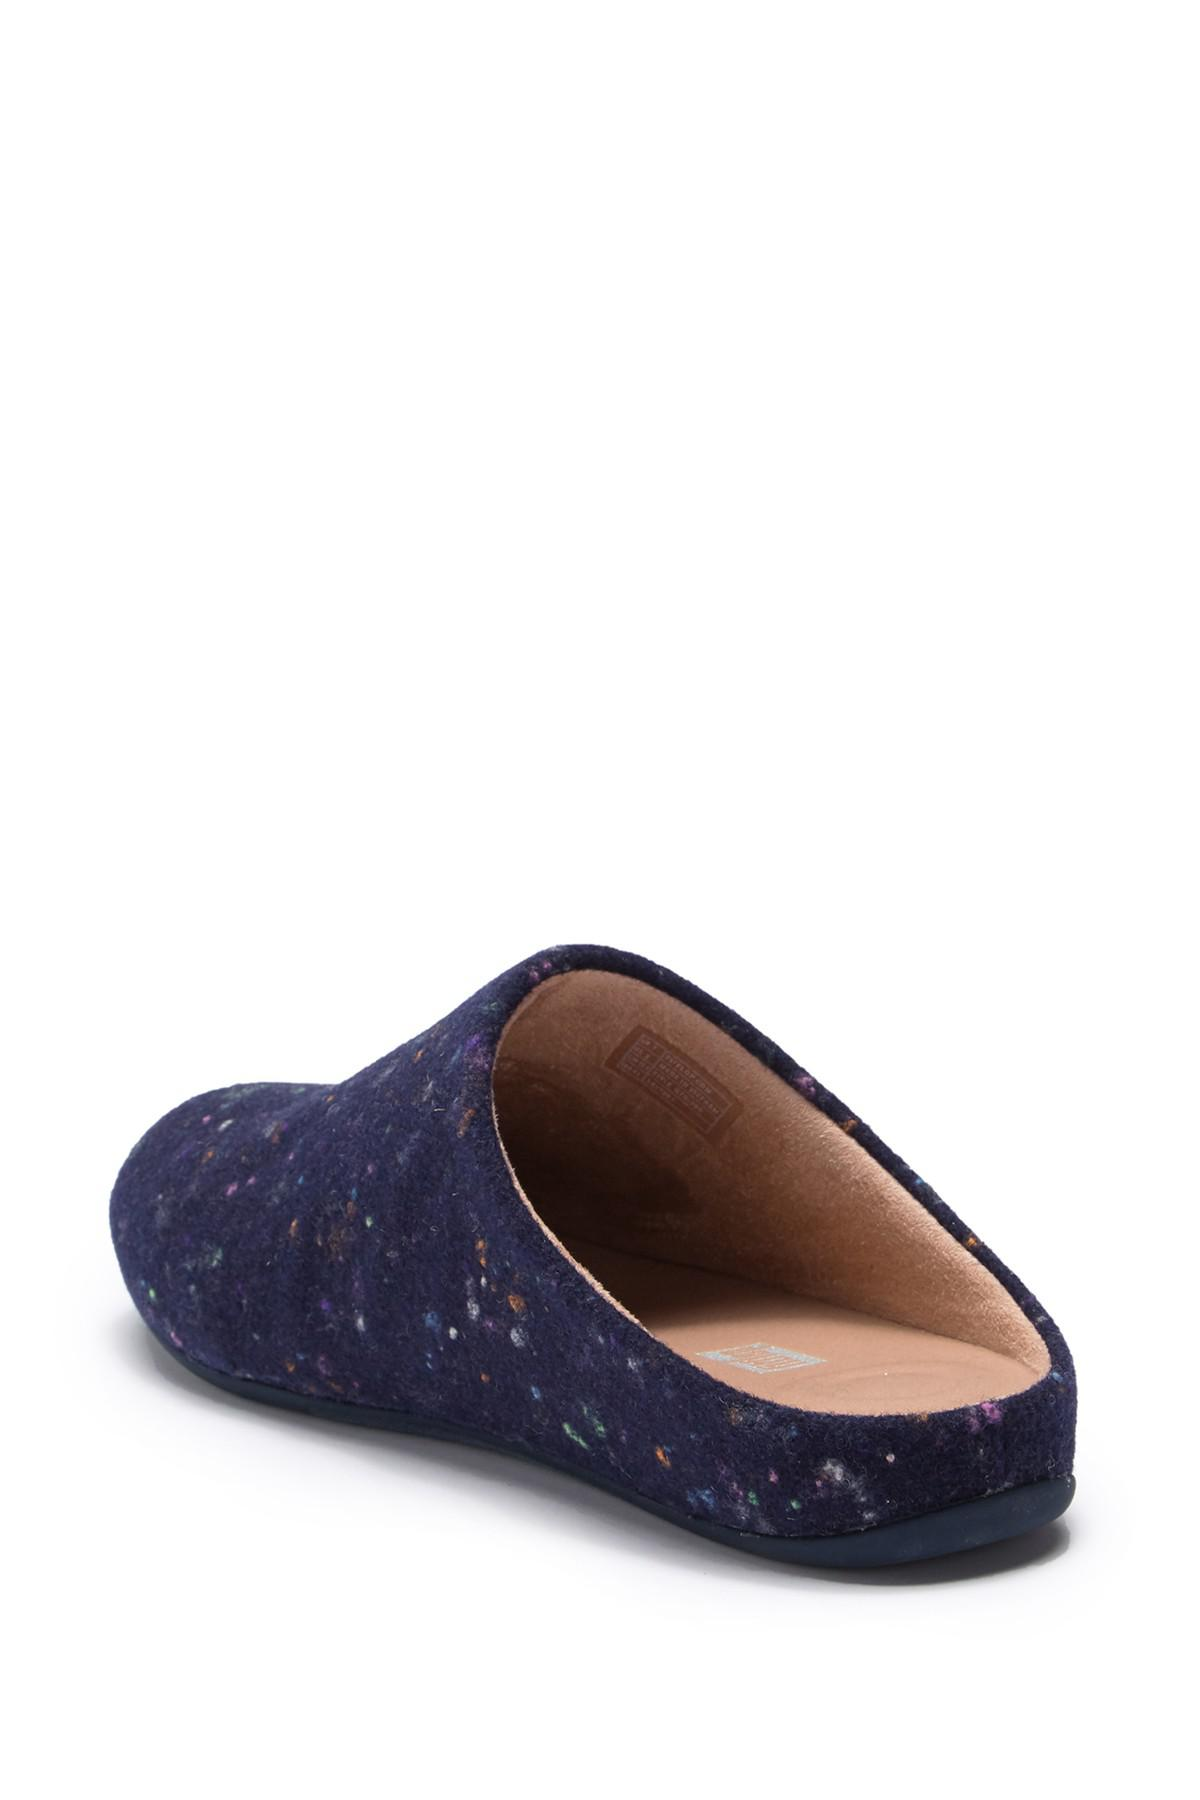 c575e6d0952d Lyst - Fitflop Chrissie Speckle Felt Slippers in Blue